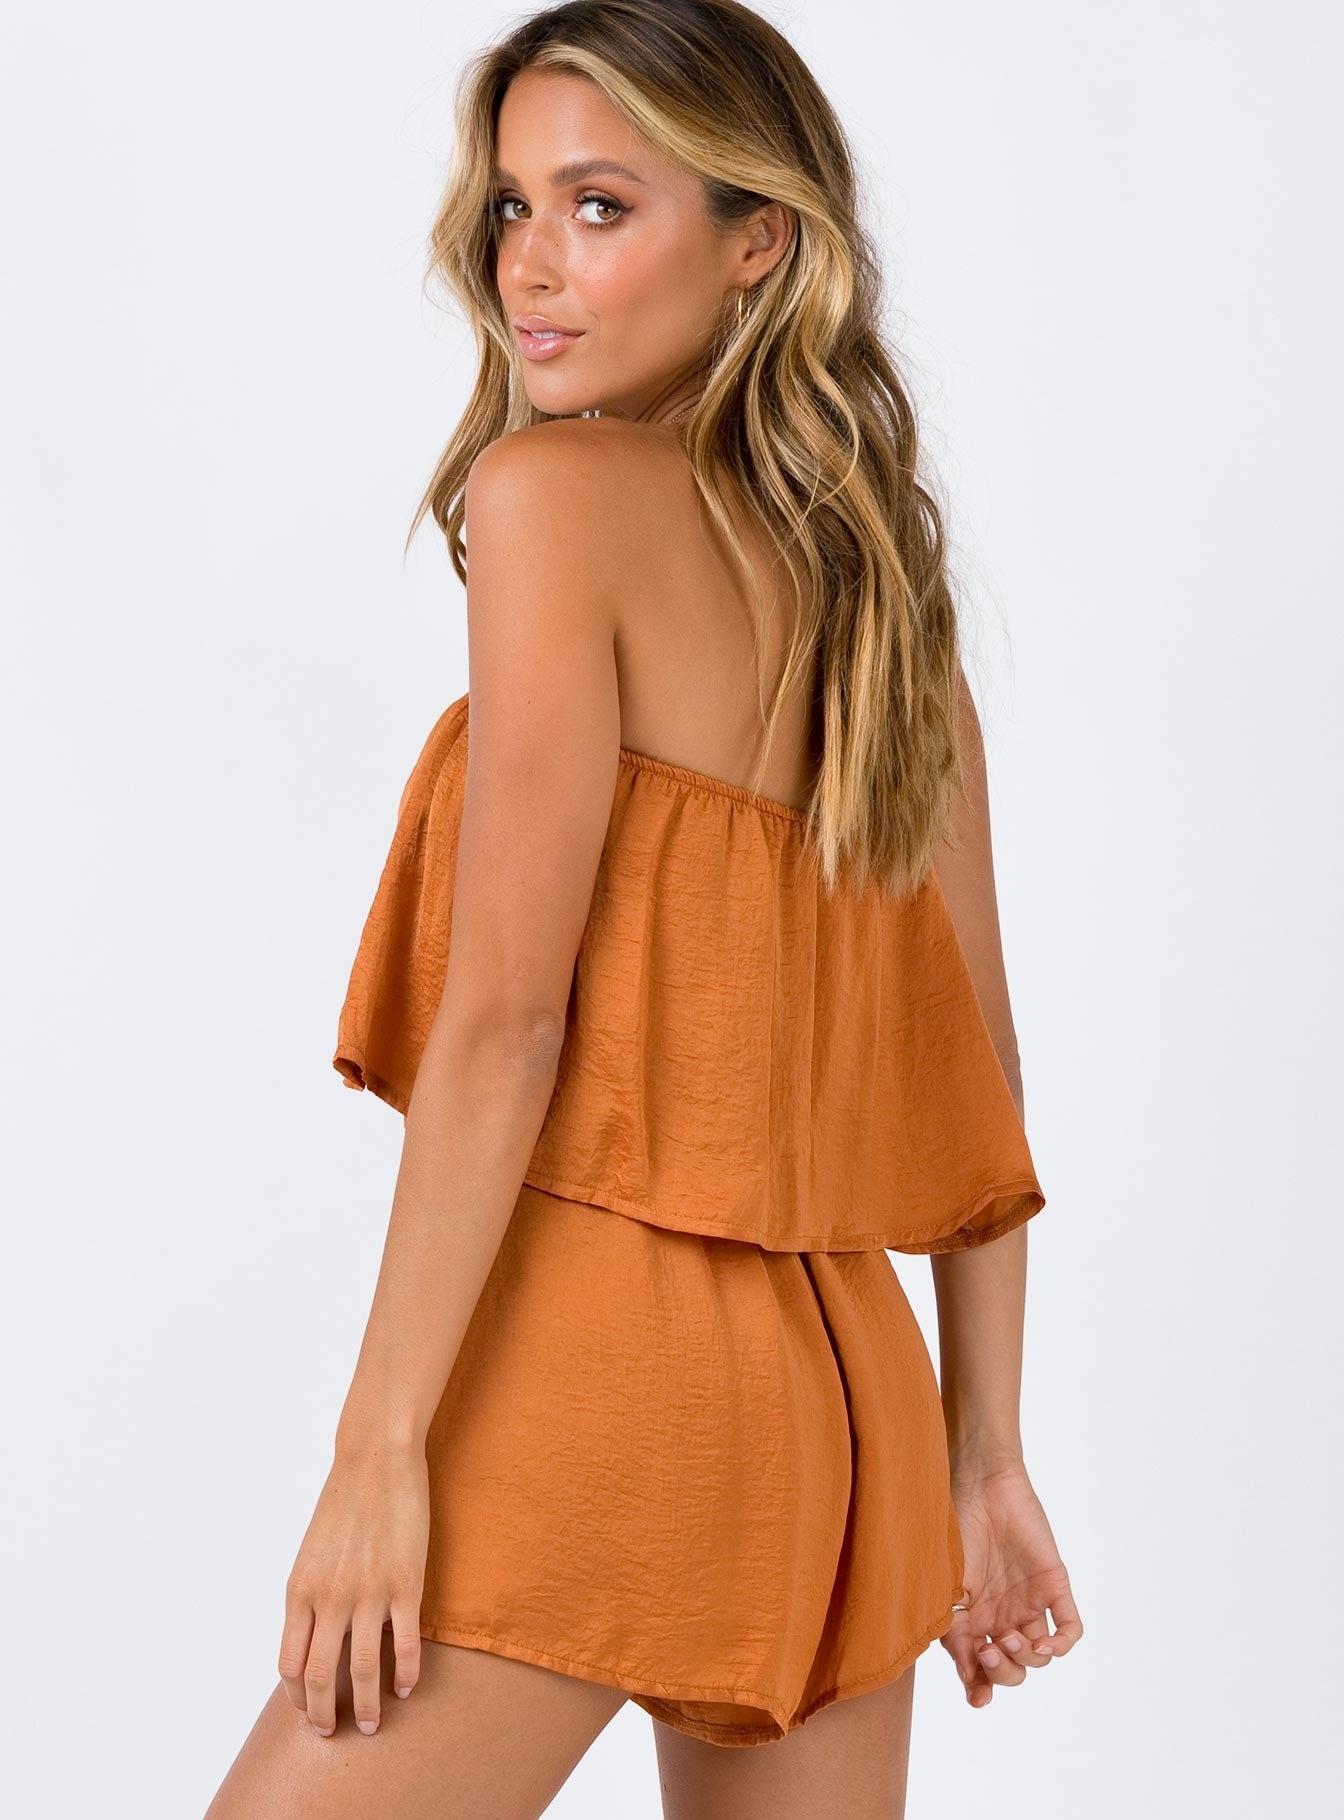 Spiced Honey Strapless Romper Burnt Orange